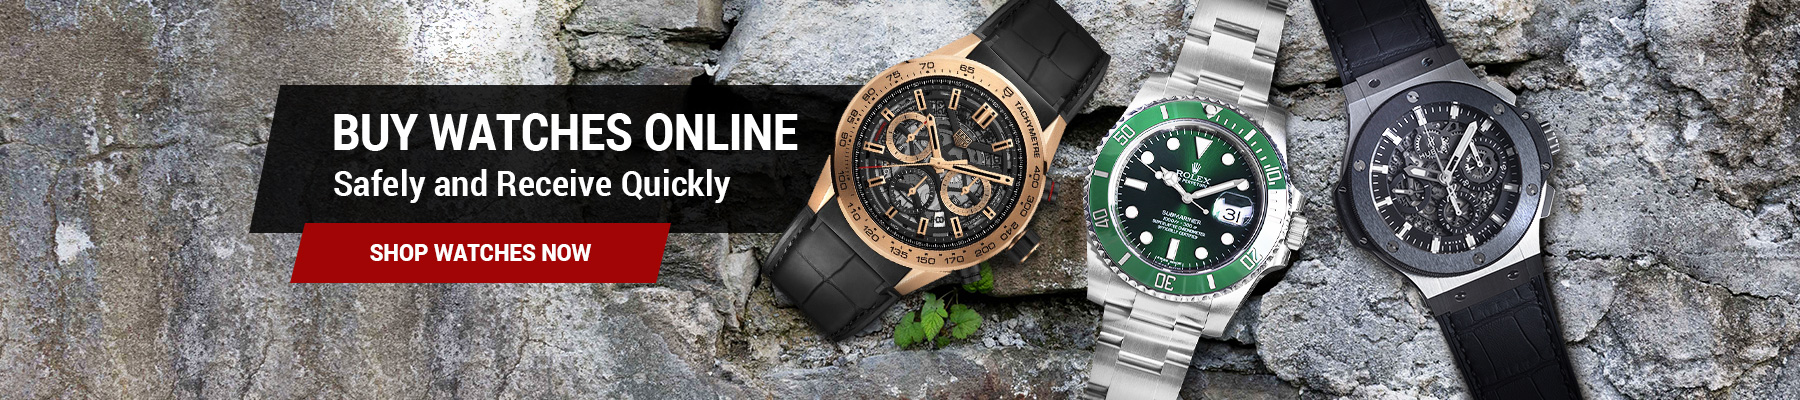 buy watches online safely and receive quickly